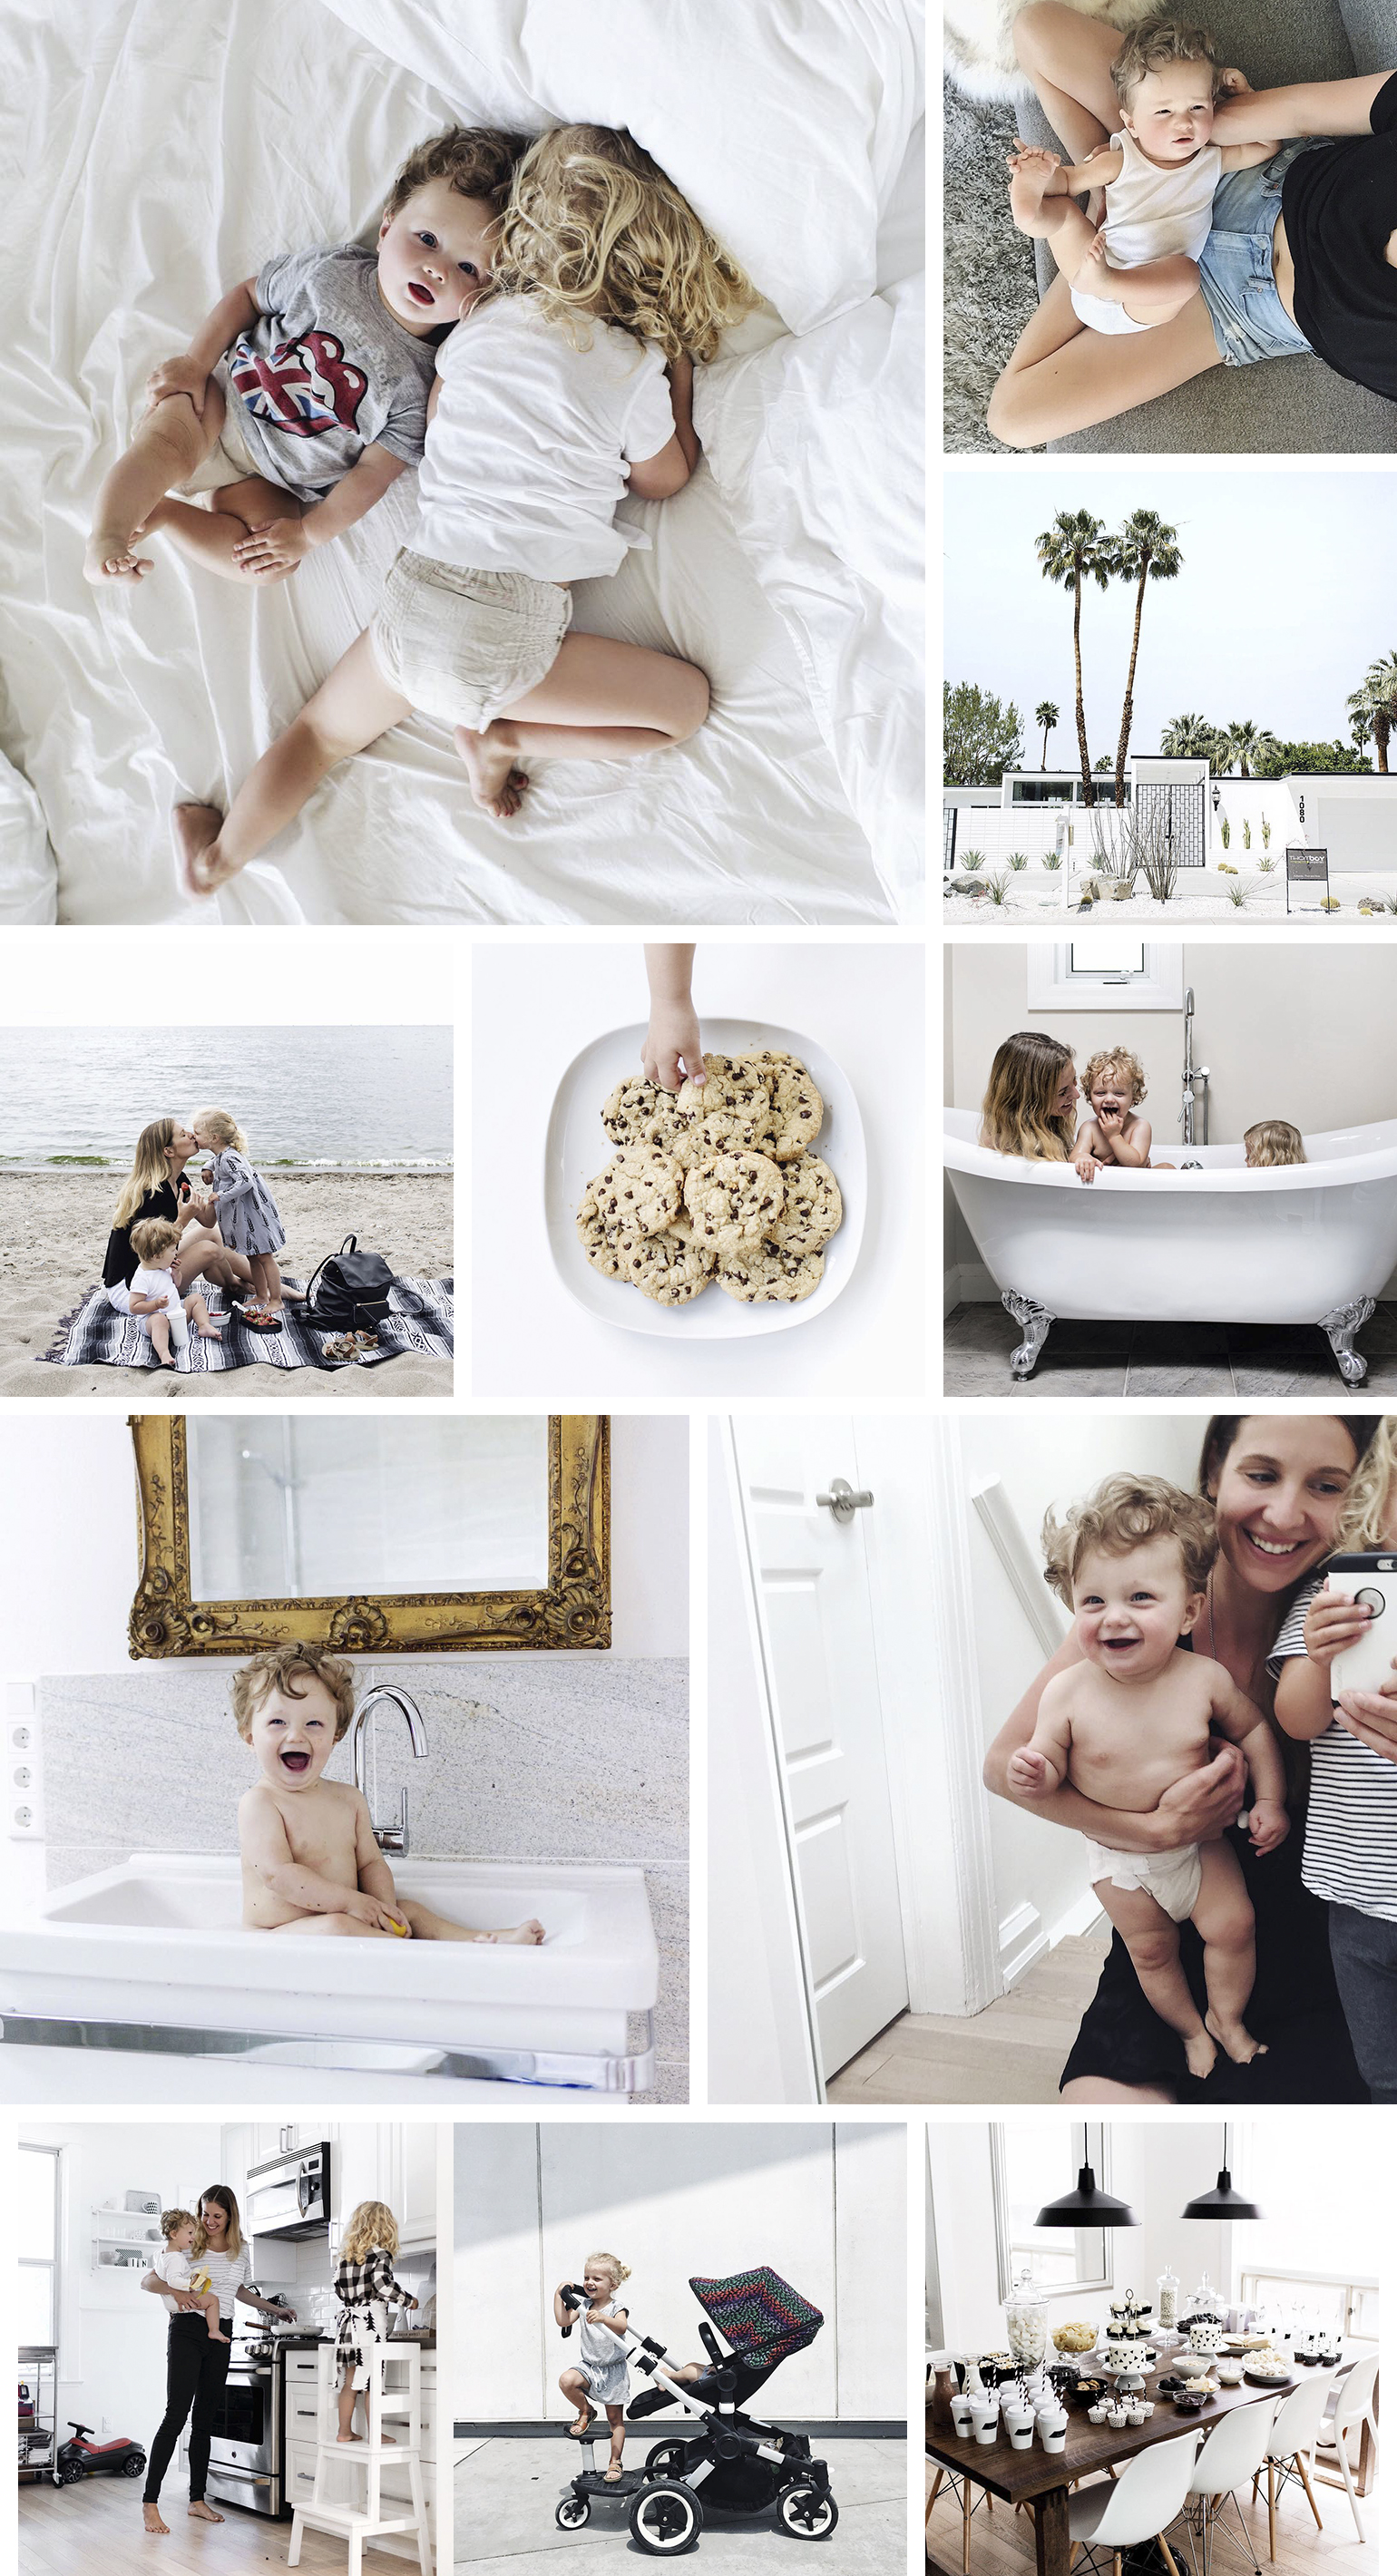 How to save and repost full-size Instagram photos | Happy Grey Lucky